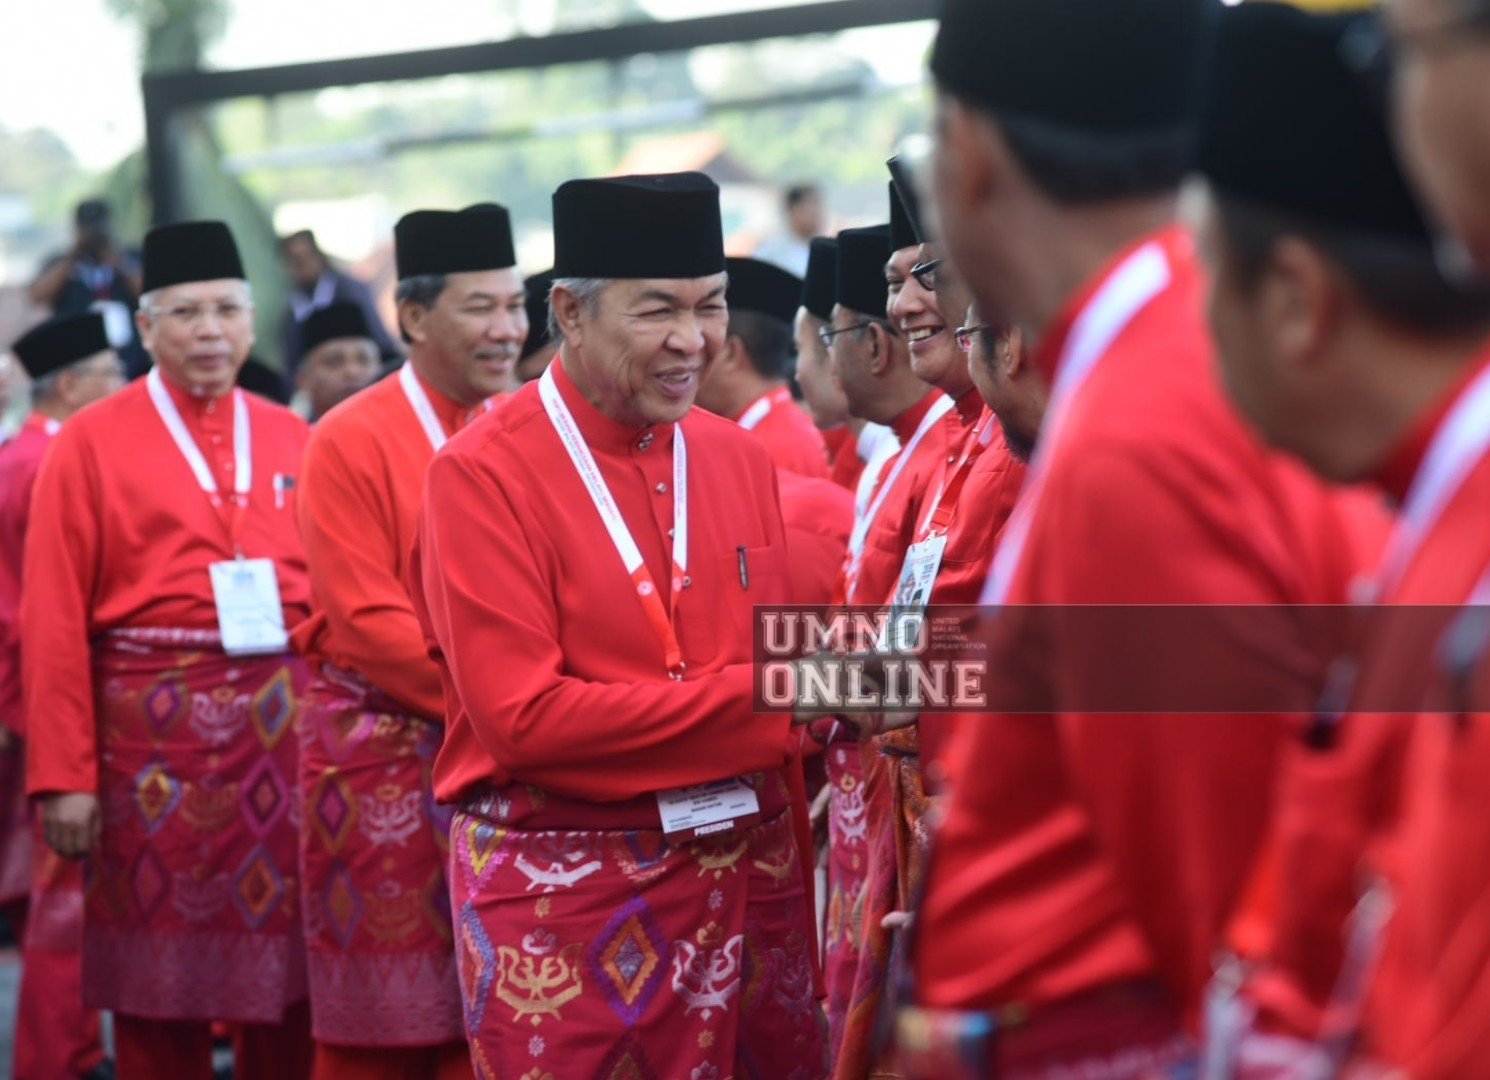 Umno will not join the government